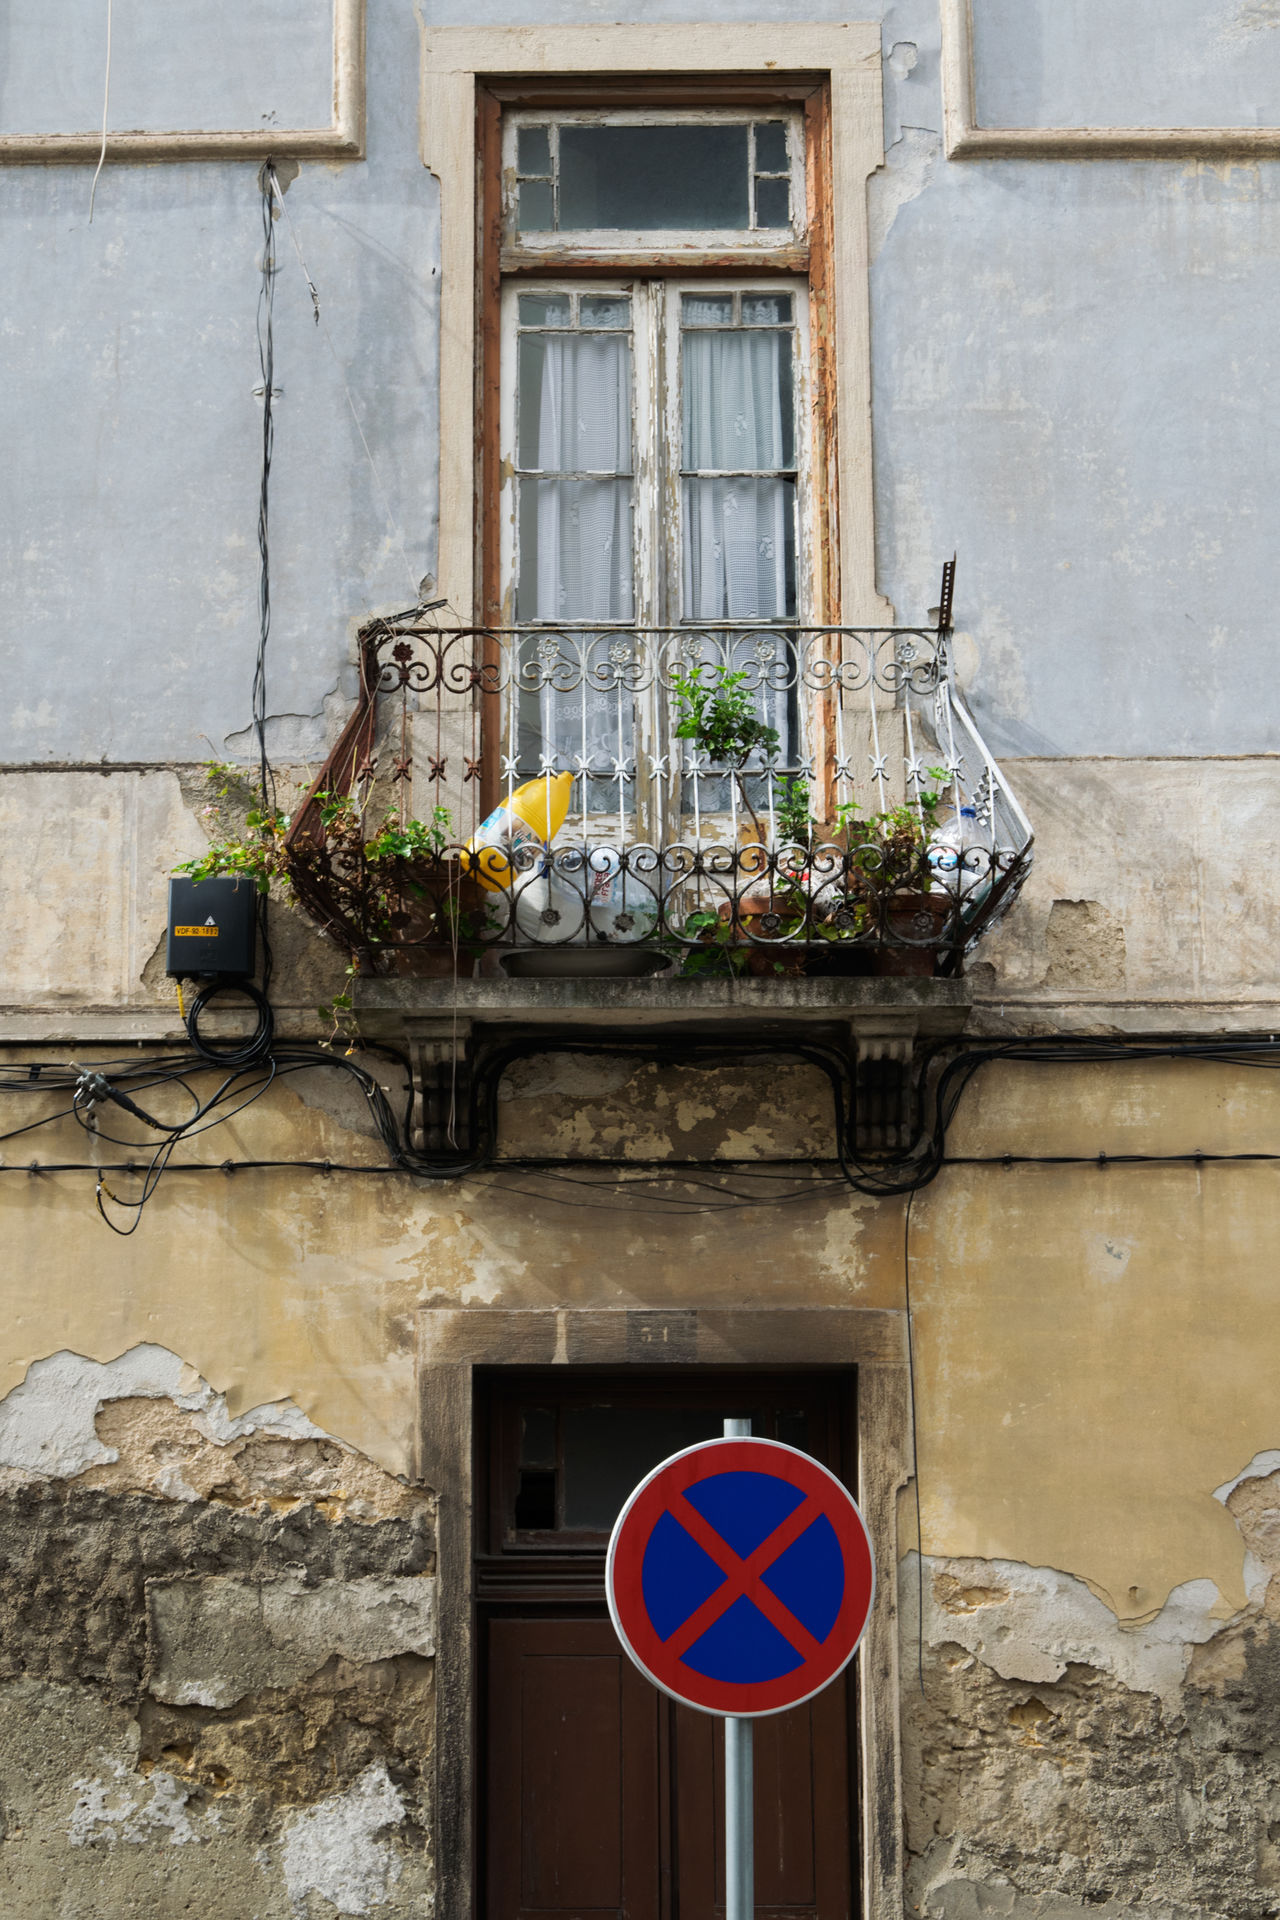 View of Amadora, suburb of Lisbon in Portugal Amadora Architecture Balcony Building Exterior Built Structure Day Flower No Parking Sign No People No Stopping Sign Outdoors Plant Portugal Window Window Box